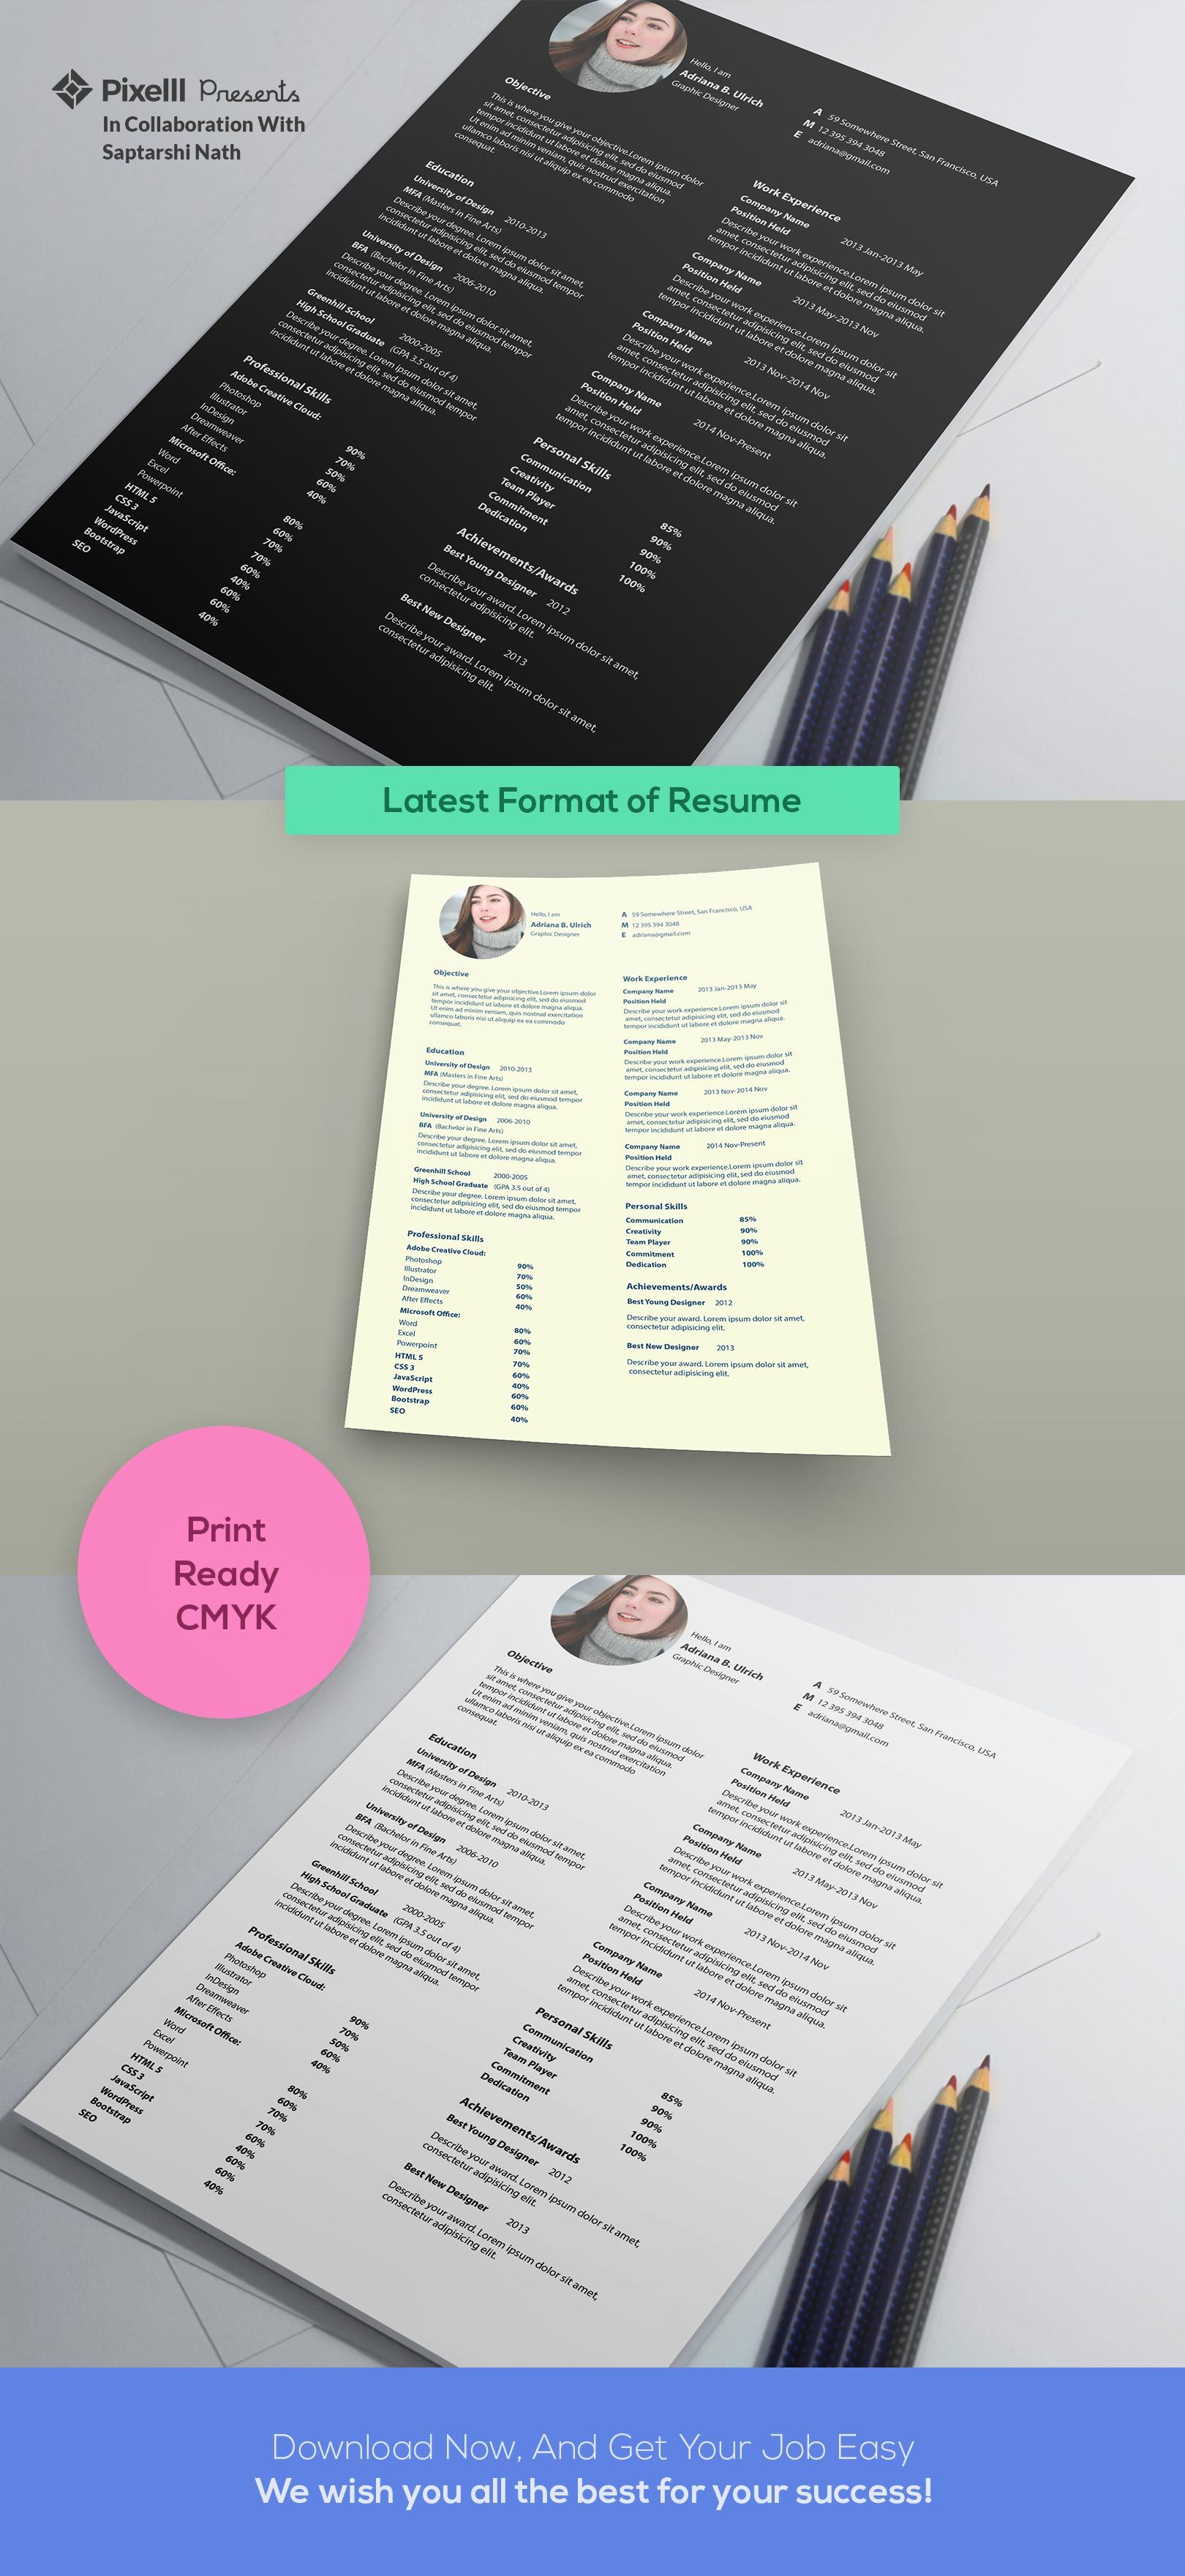 Latest Format Of Resume Psd  Graphic Design Templates And